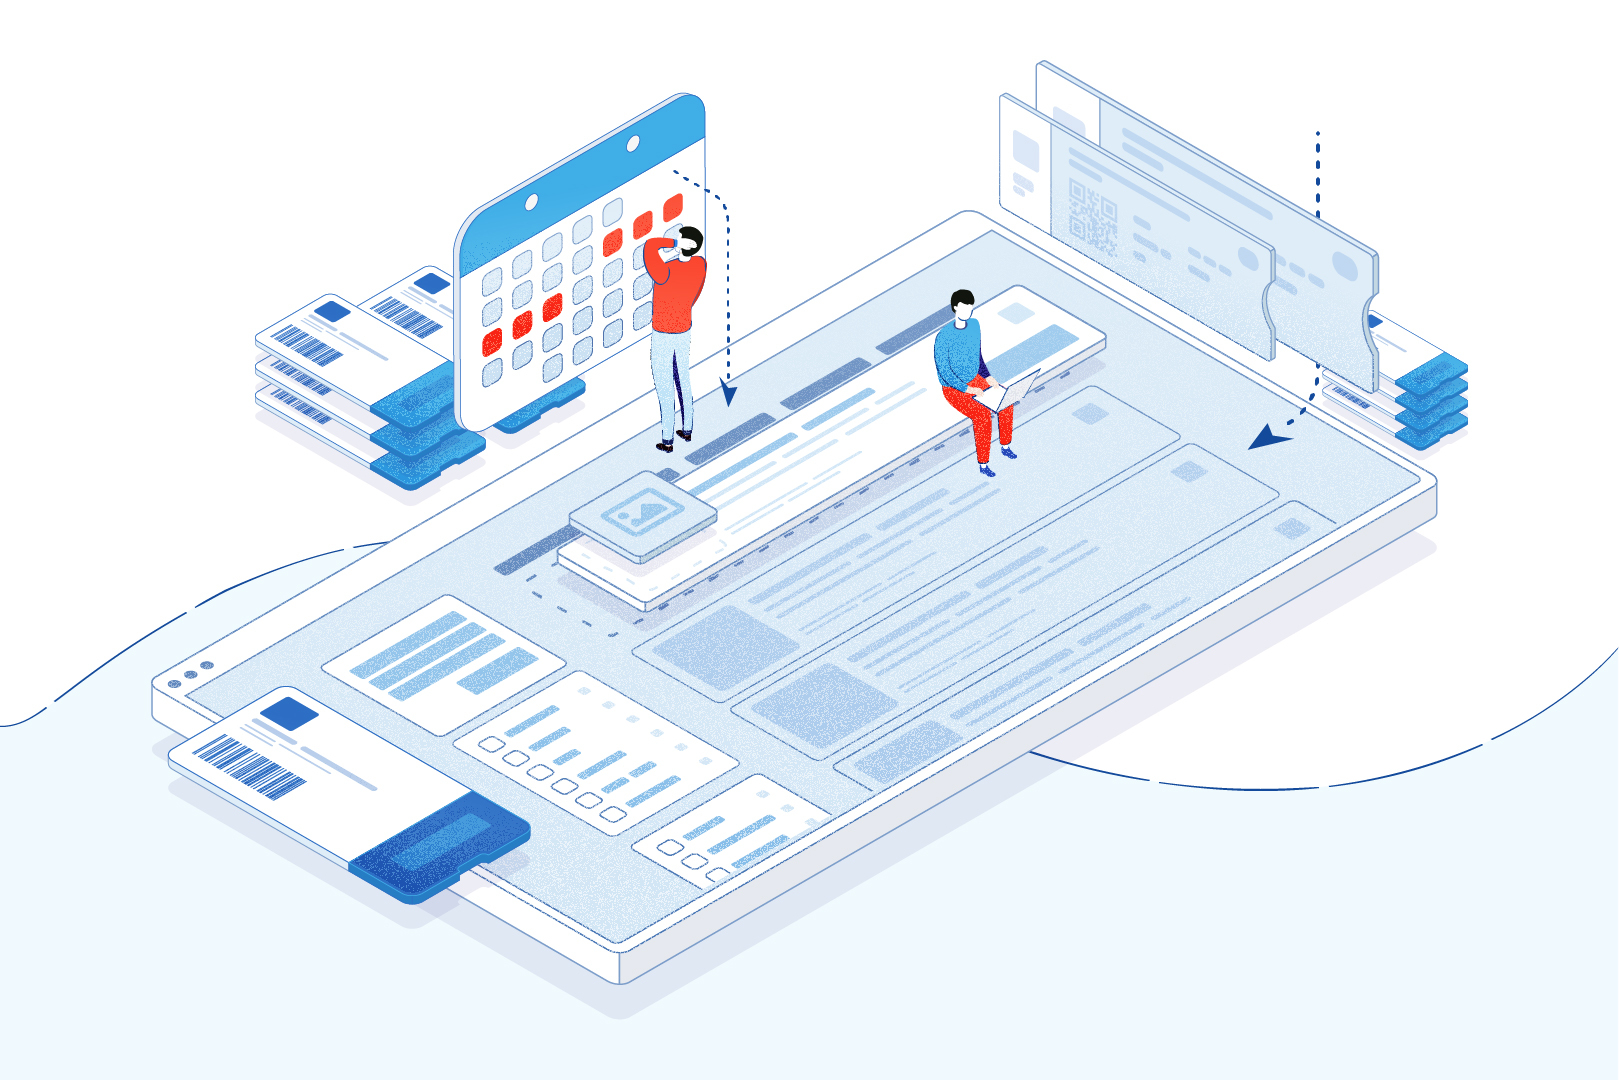 Custom ticket and event management software in 2020 – how to succeed?